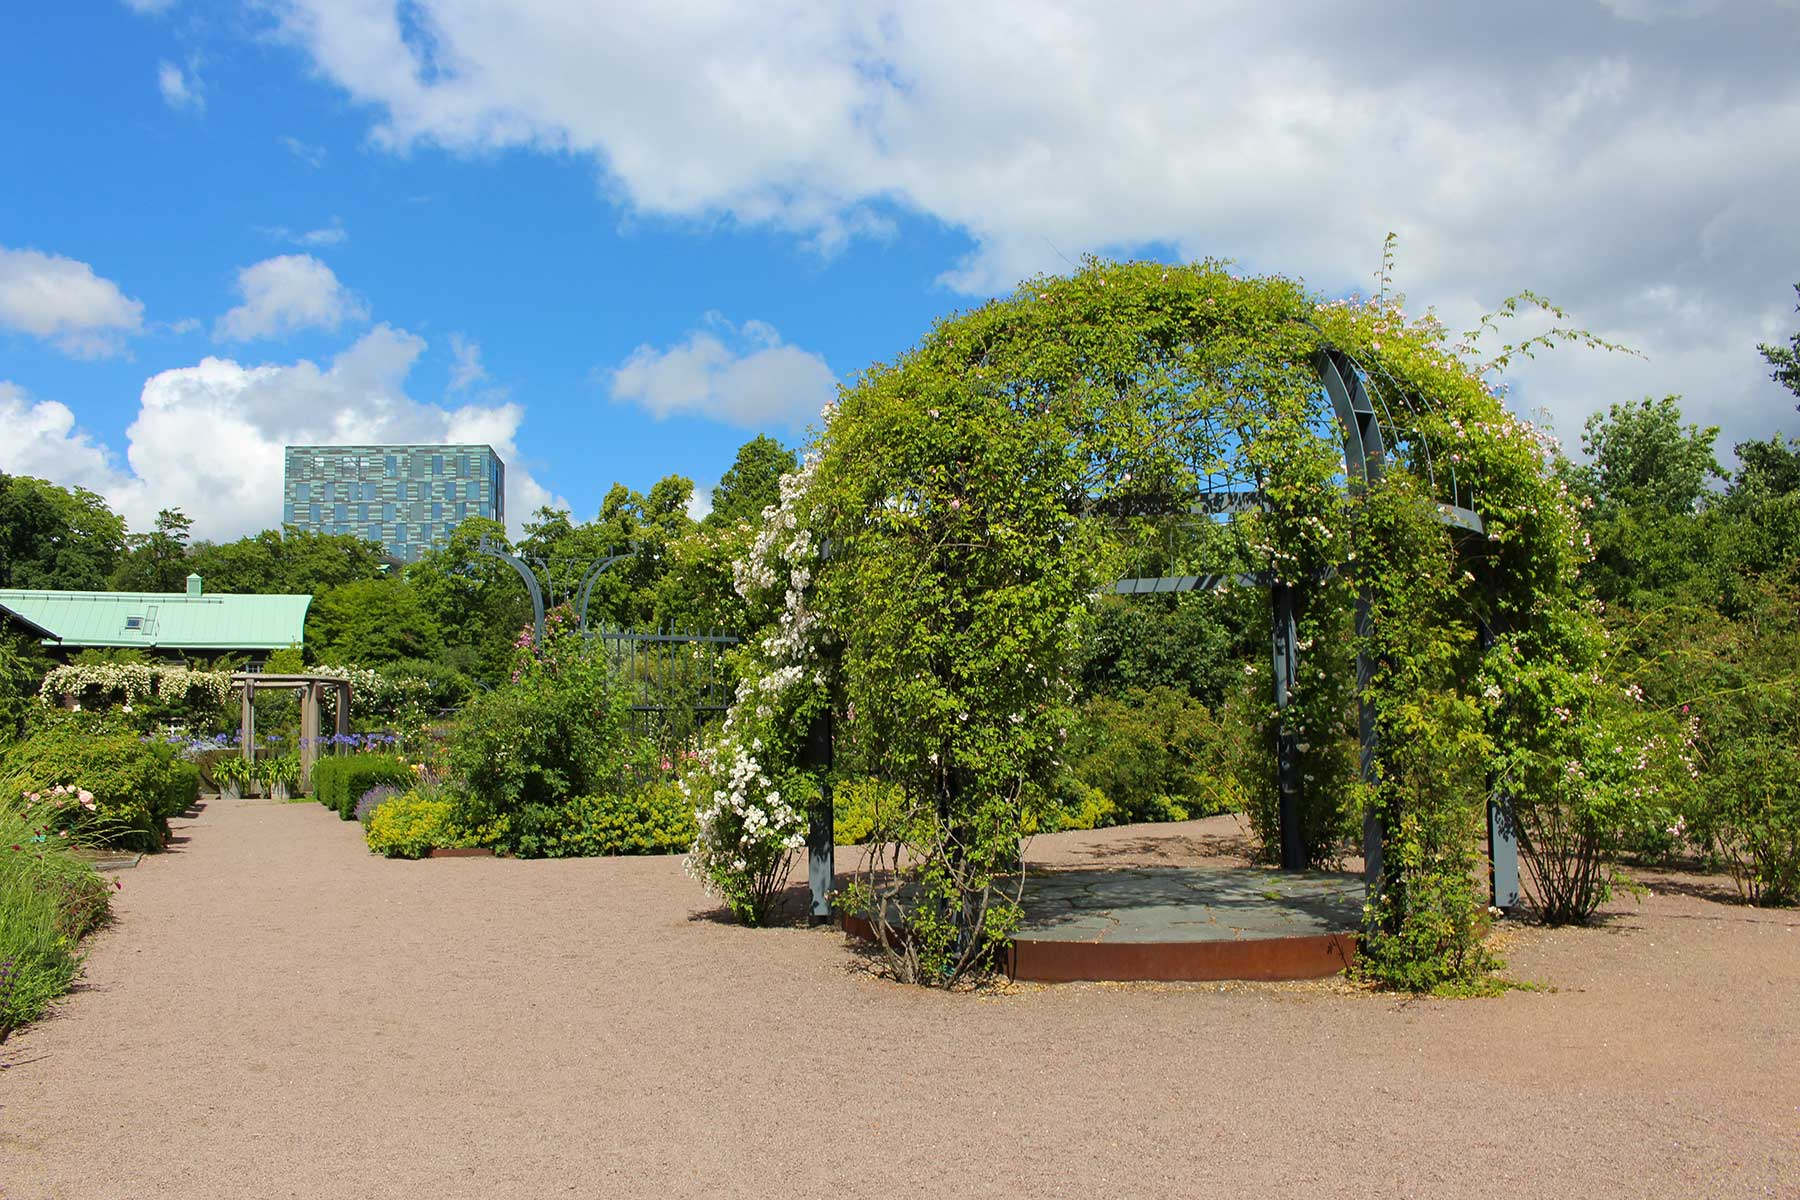 garden-society-gothenburg-12